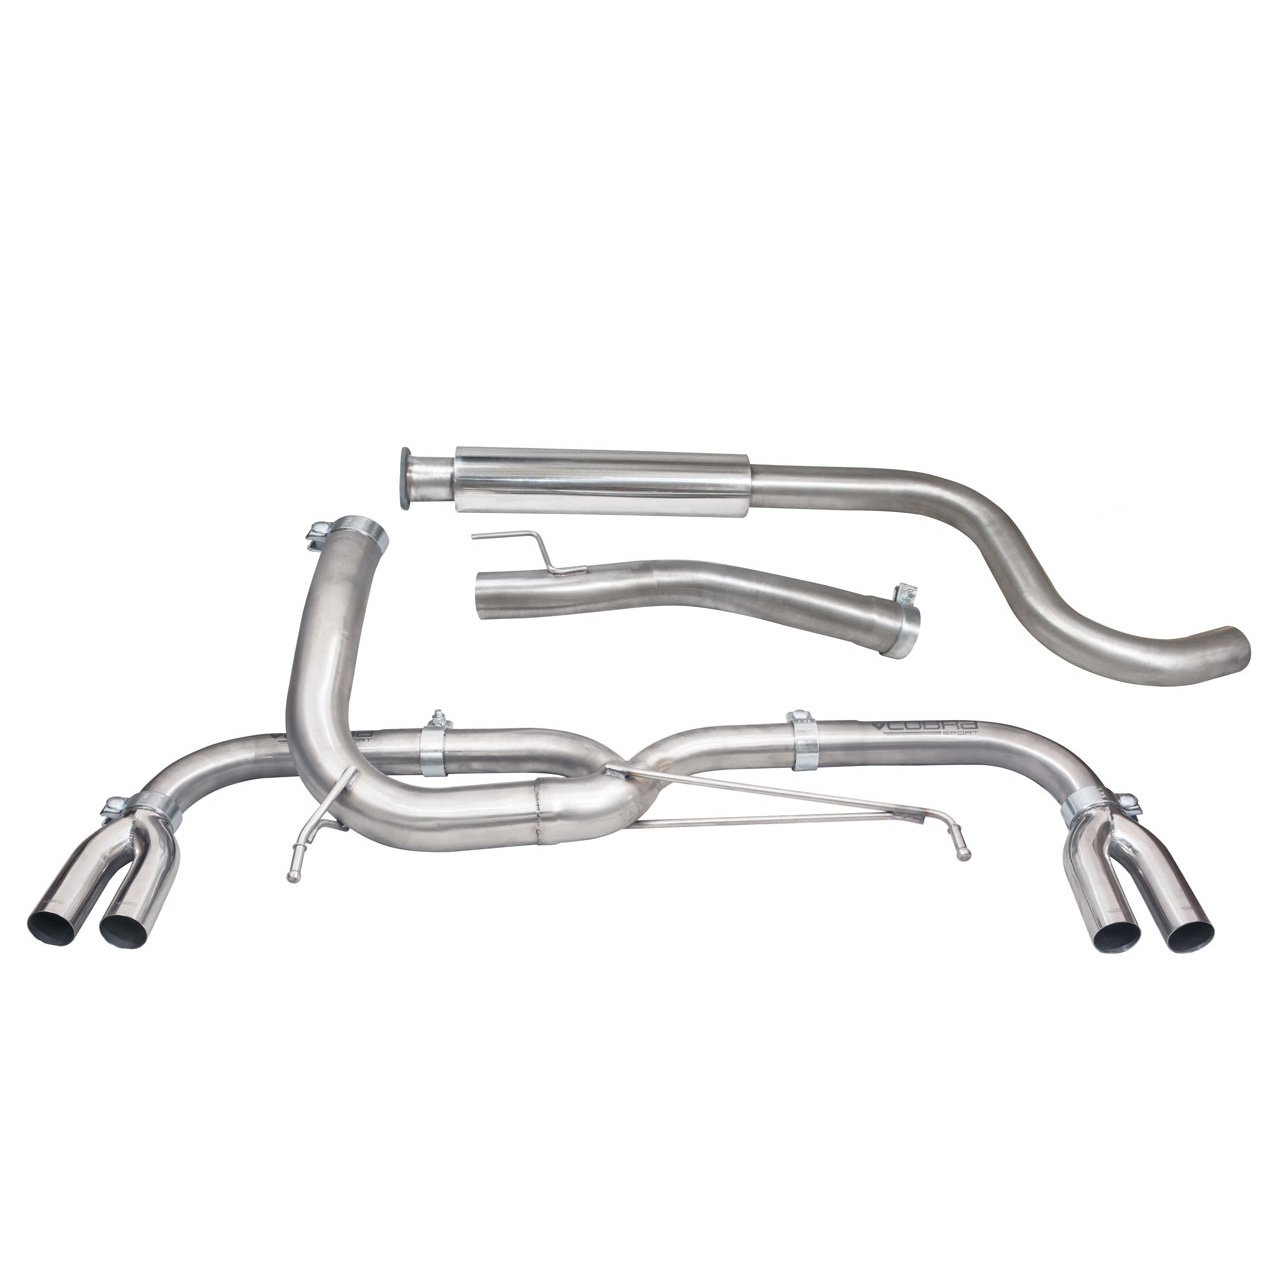 Vauxhall Astra J VXR (12-19) Venom Box Delete Cat Back Performance Exhaust